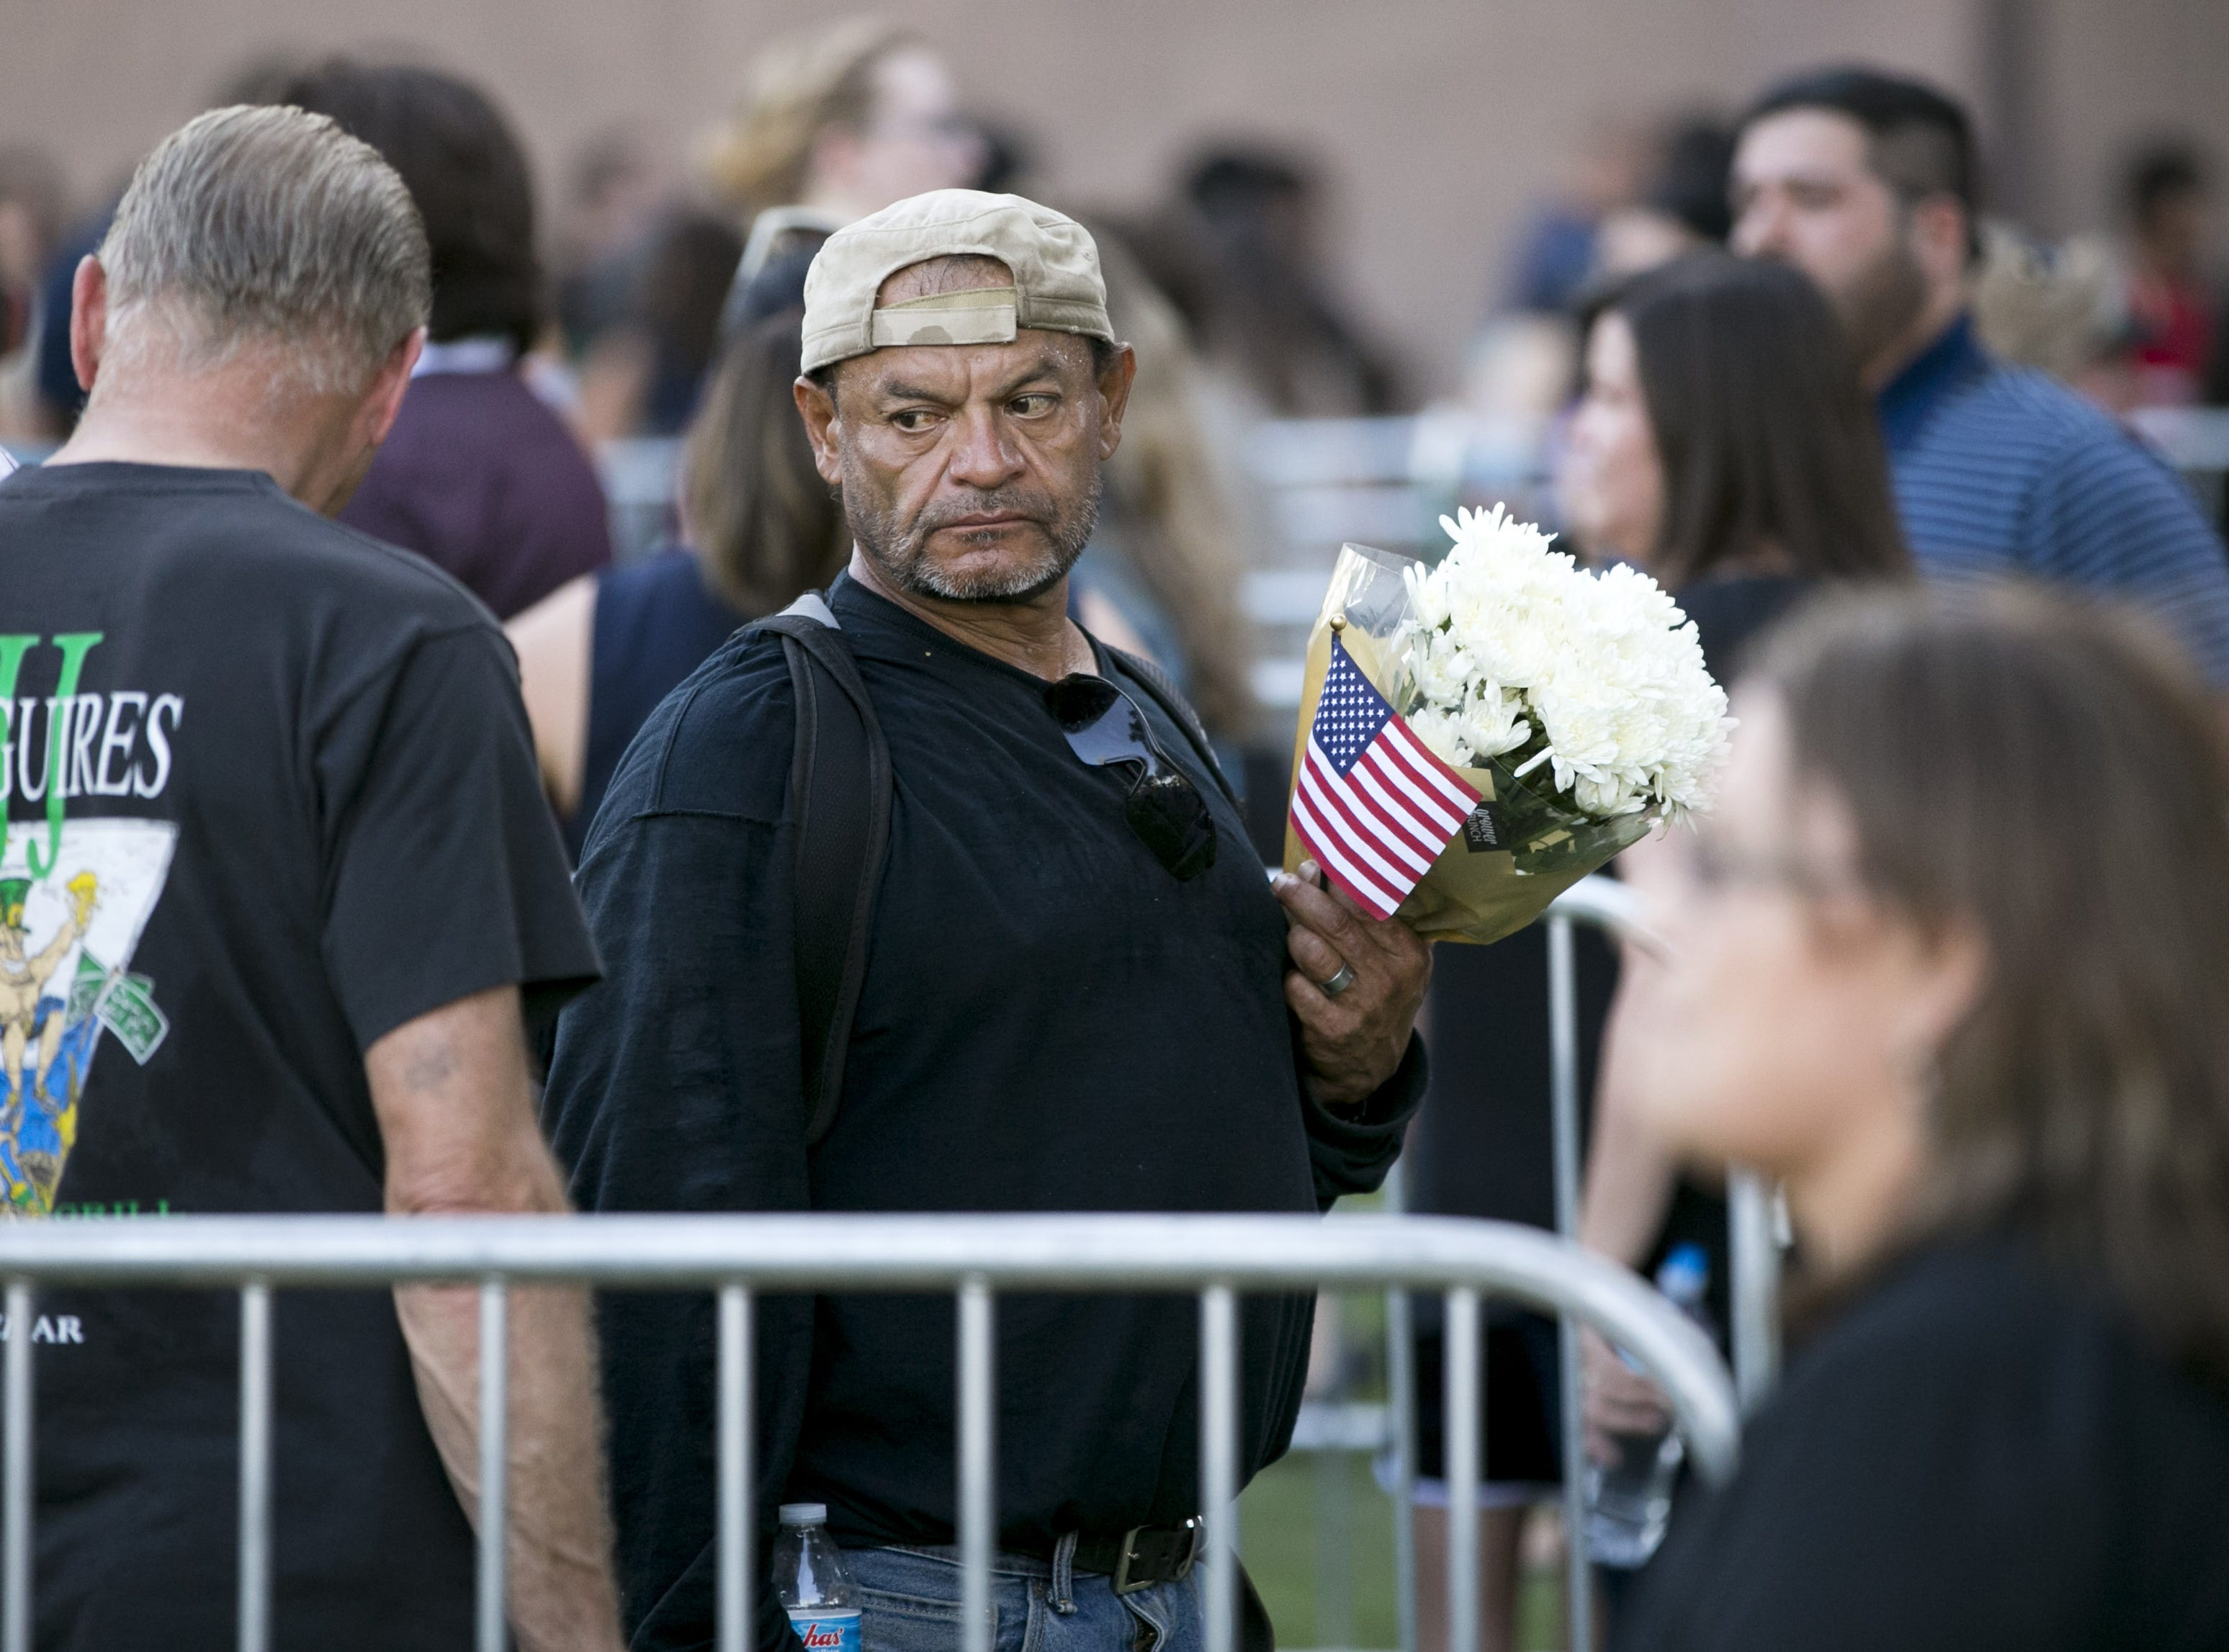 Holding flowers and an American flag, Pedro Montoya of Phoenix waits in line to pay his respects for Senator John McCain lying in state at the Arizona Capitol in Phoenix on Wednesday, August 29, 2018.